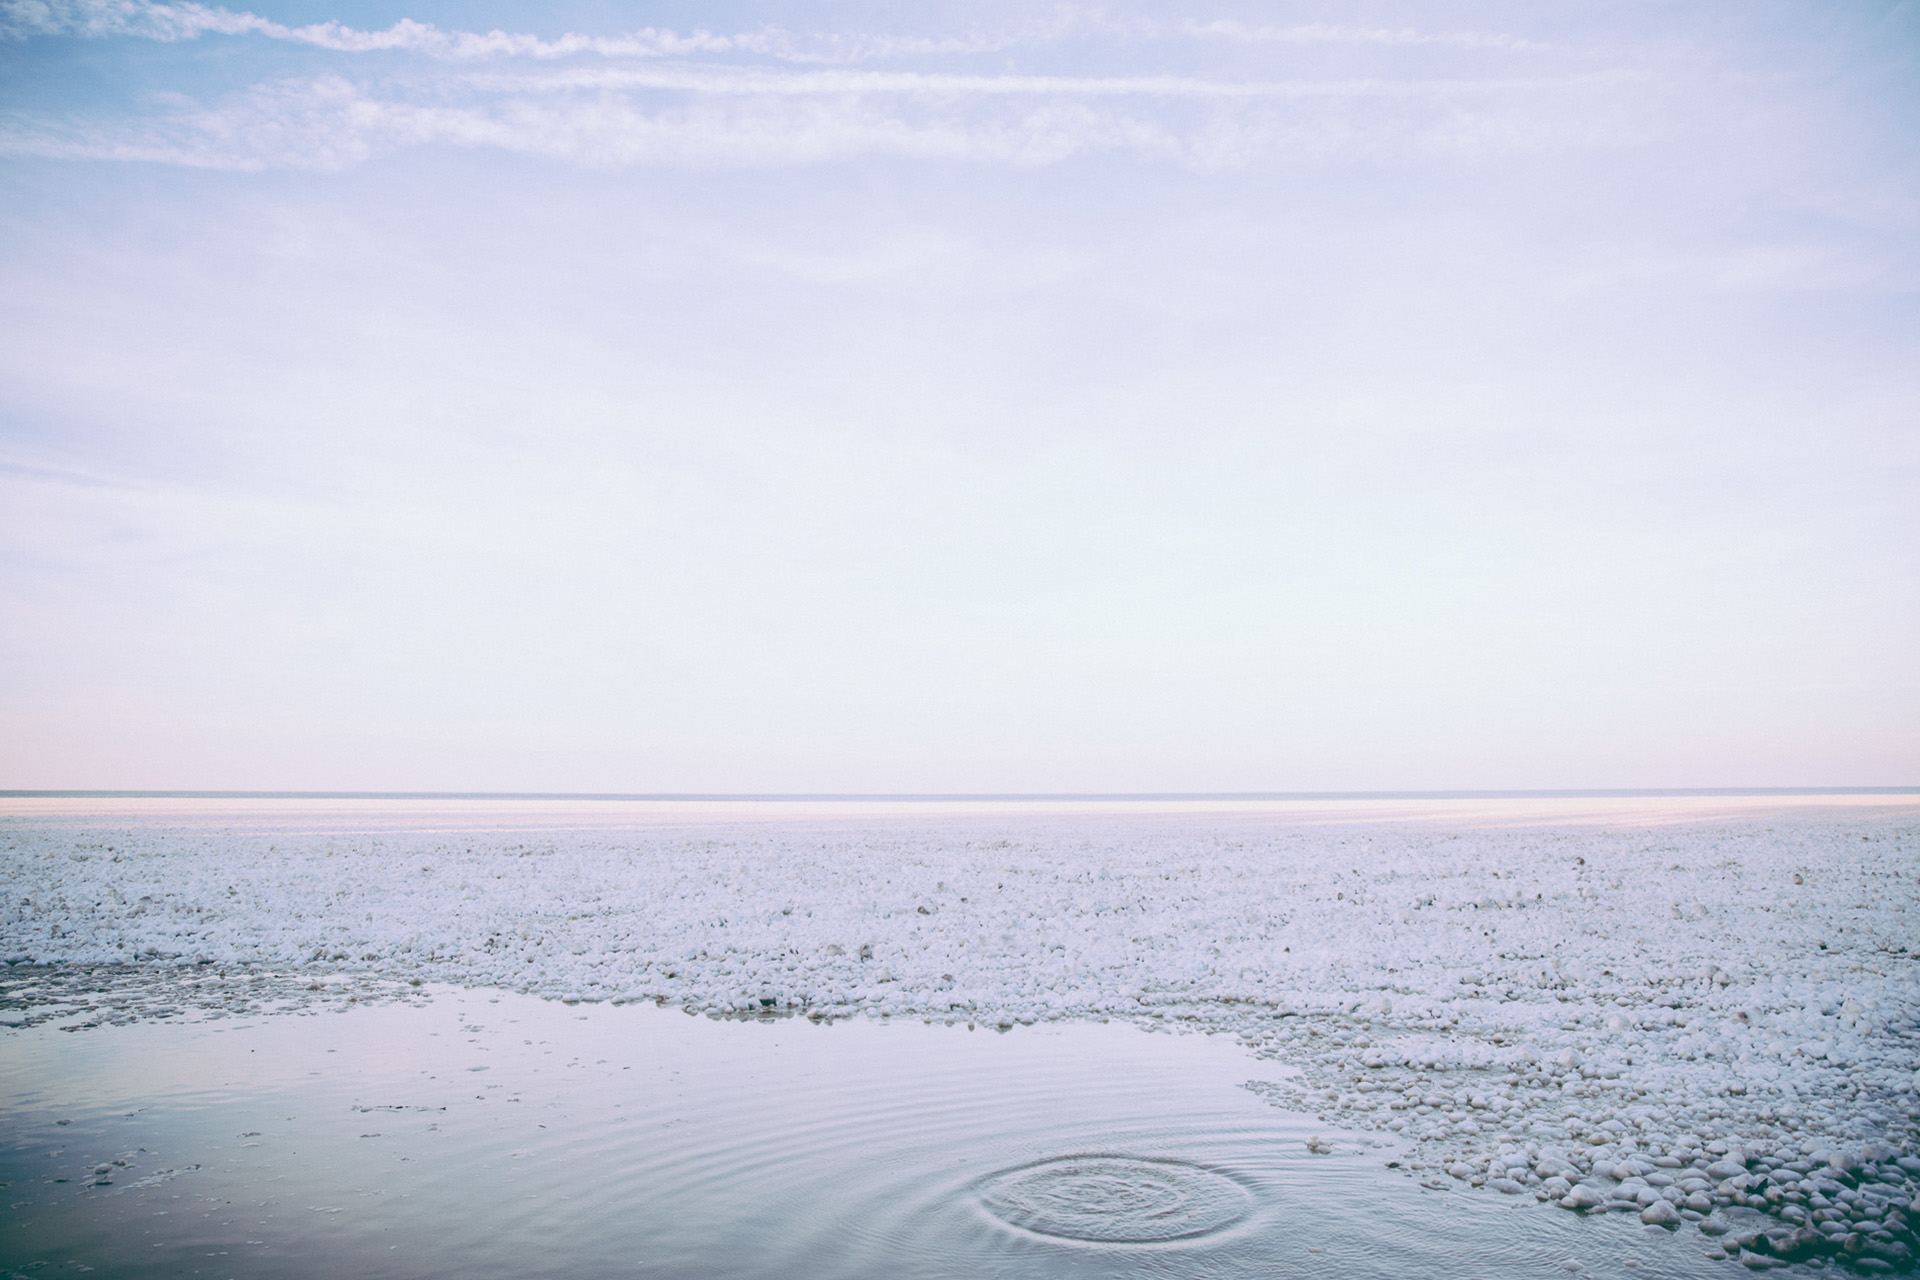 Winter Engagement Session in Bay Village - Too Much Awesomeness - Cleveland Wedding Photographer 13.jpg